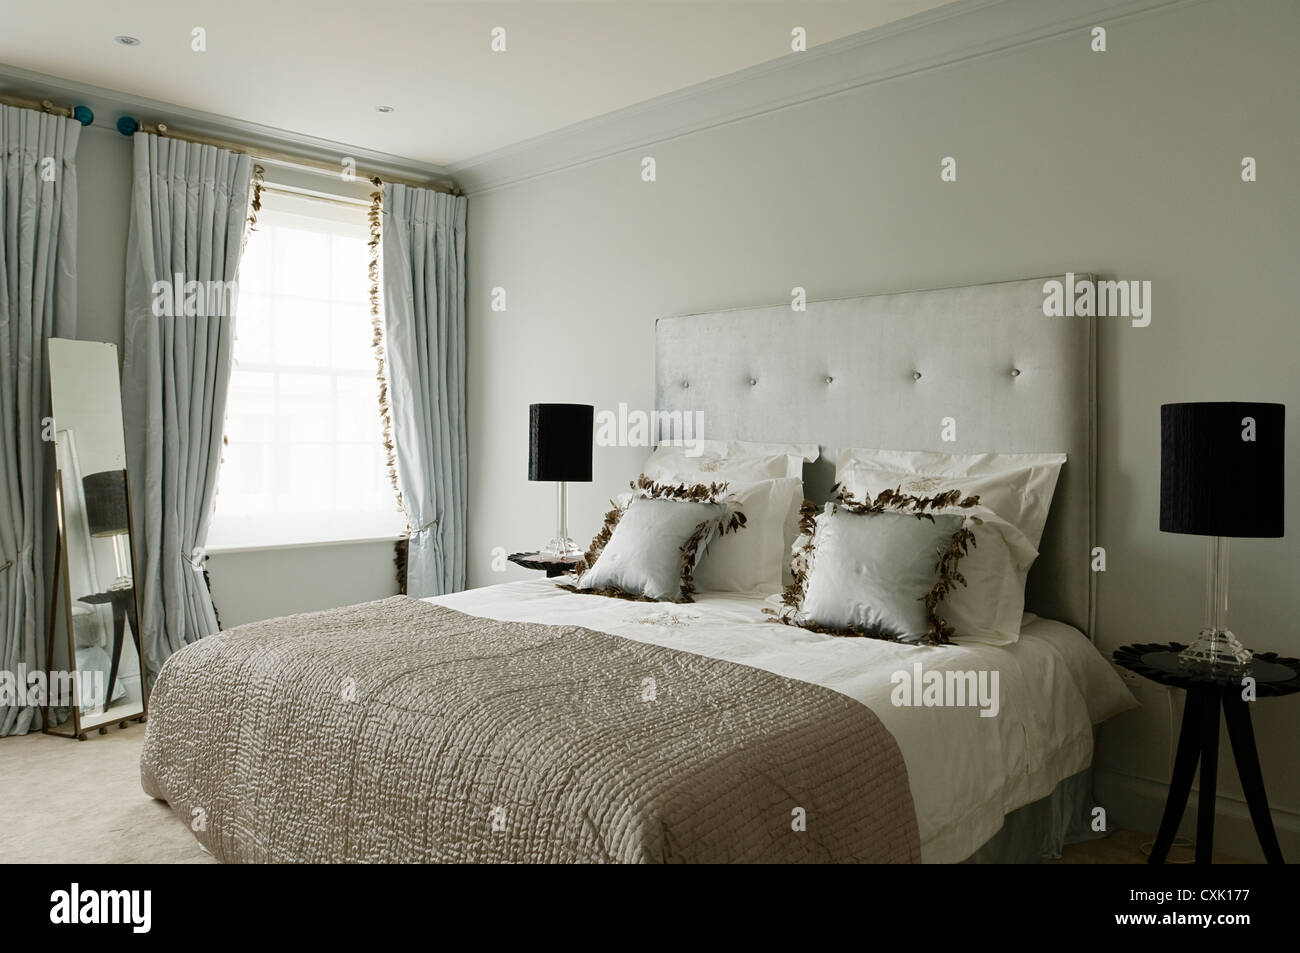 colour day interior bedroom double bed headboard window treatment ... : quilt double bed - Adamdwight.com